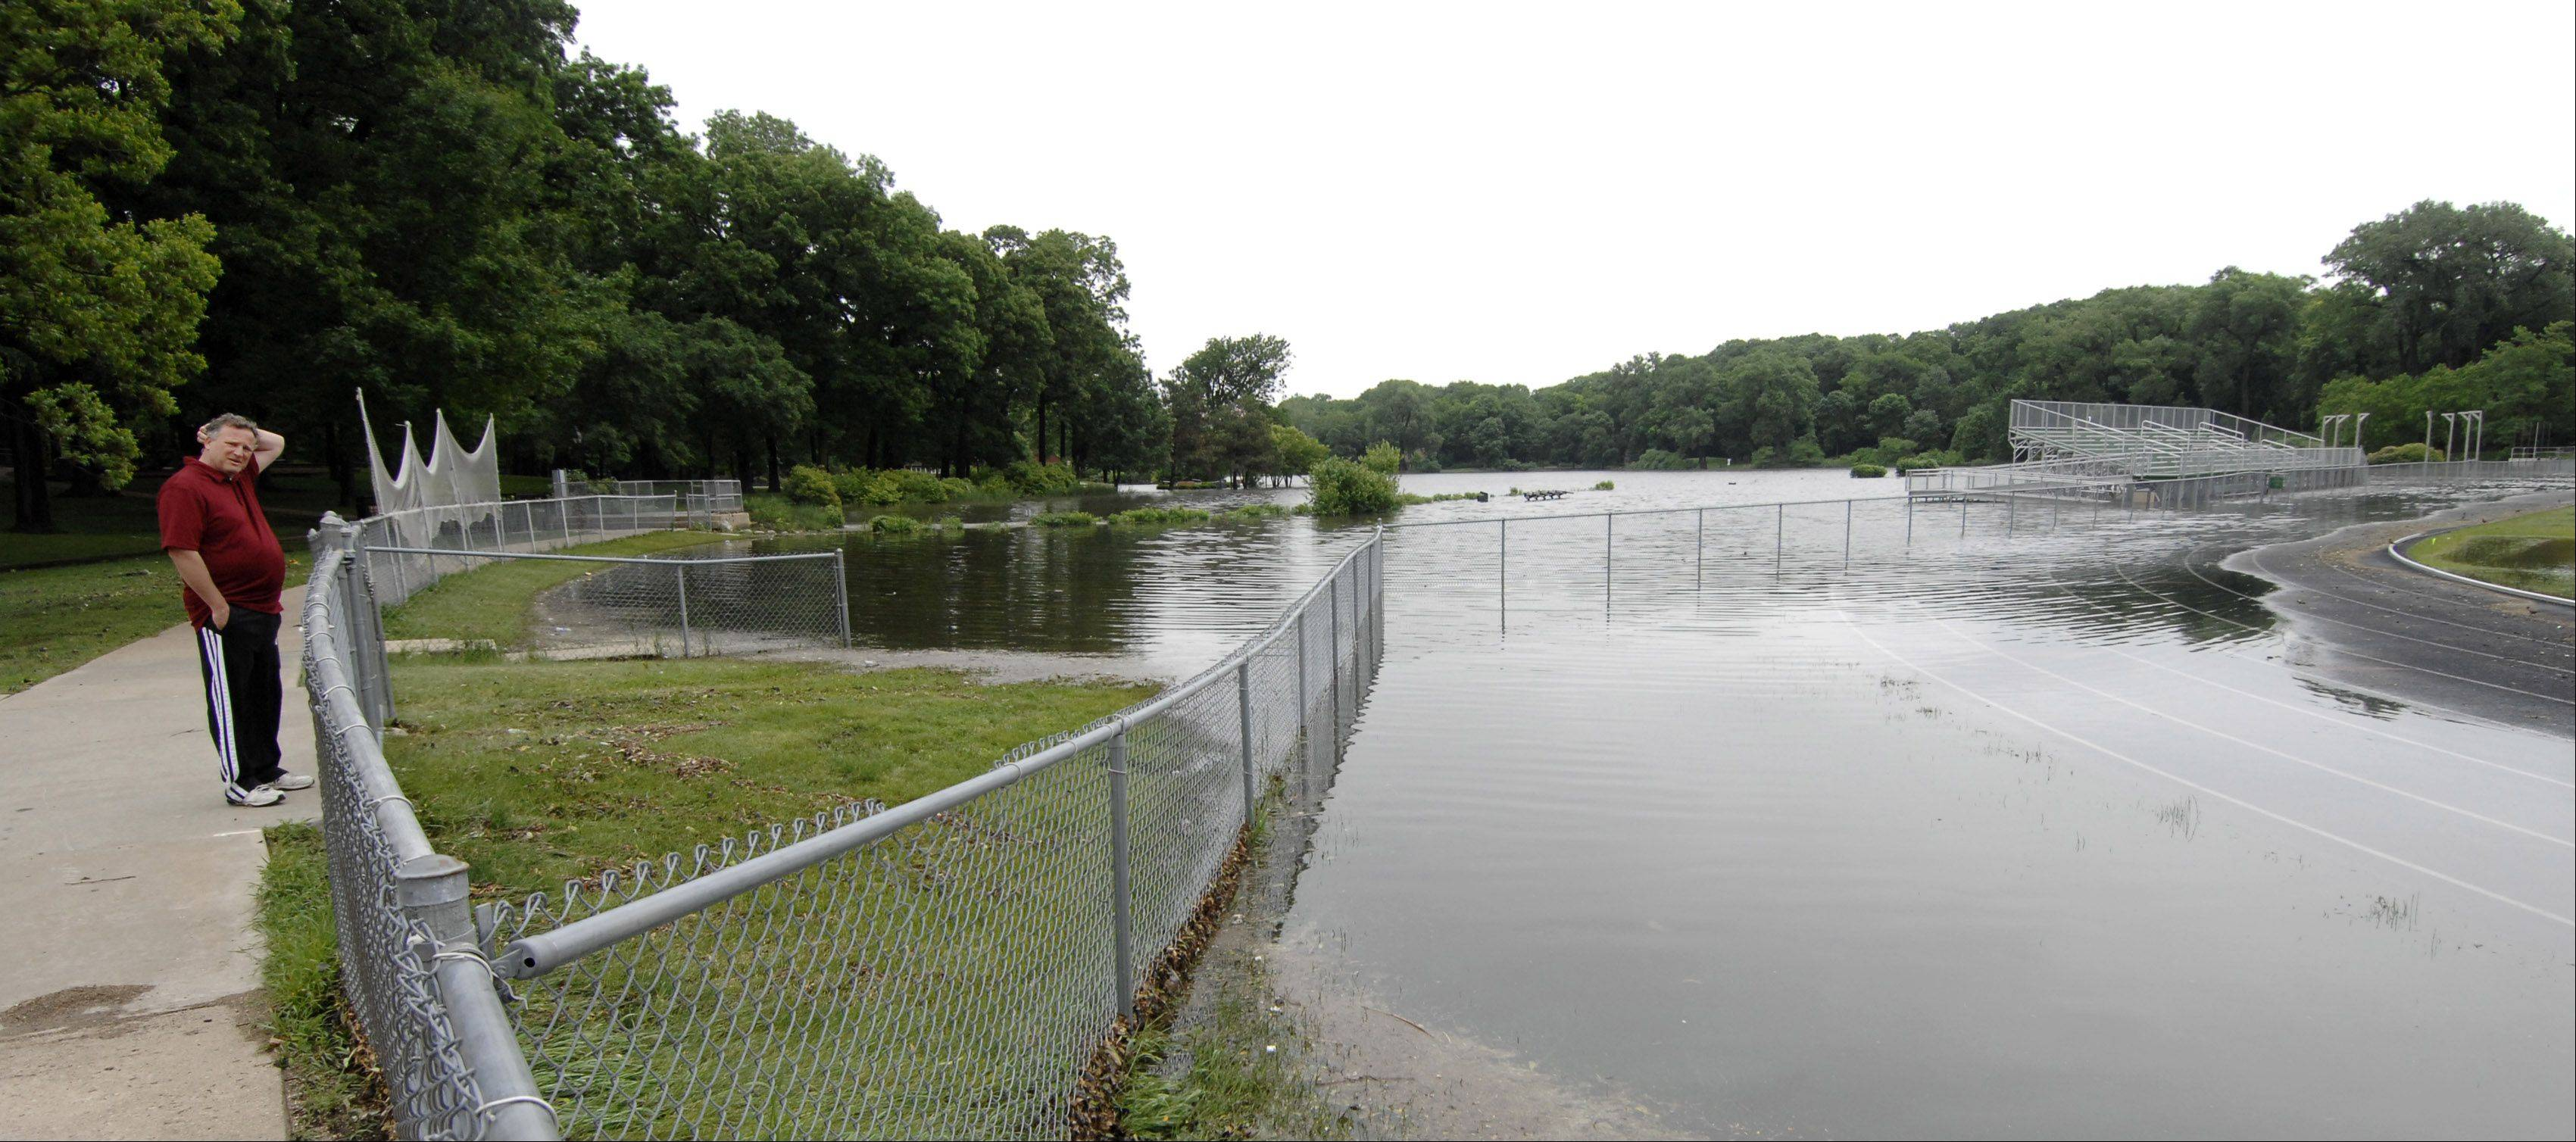 A consultant hired by the Glen Ellyn village board and park district board has recommended solutions intended to reduce the probability of Lake Ellyn overflowing, which has occurred during major storms in recent years, flooding nearby homes.